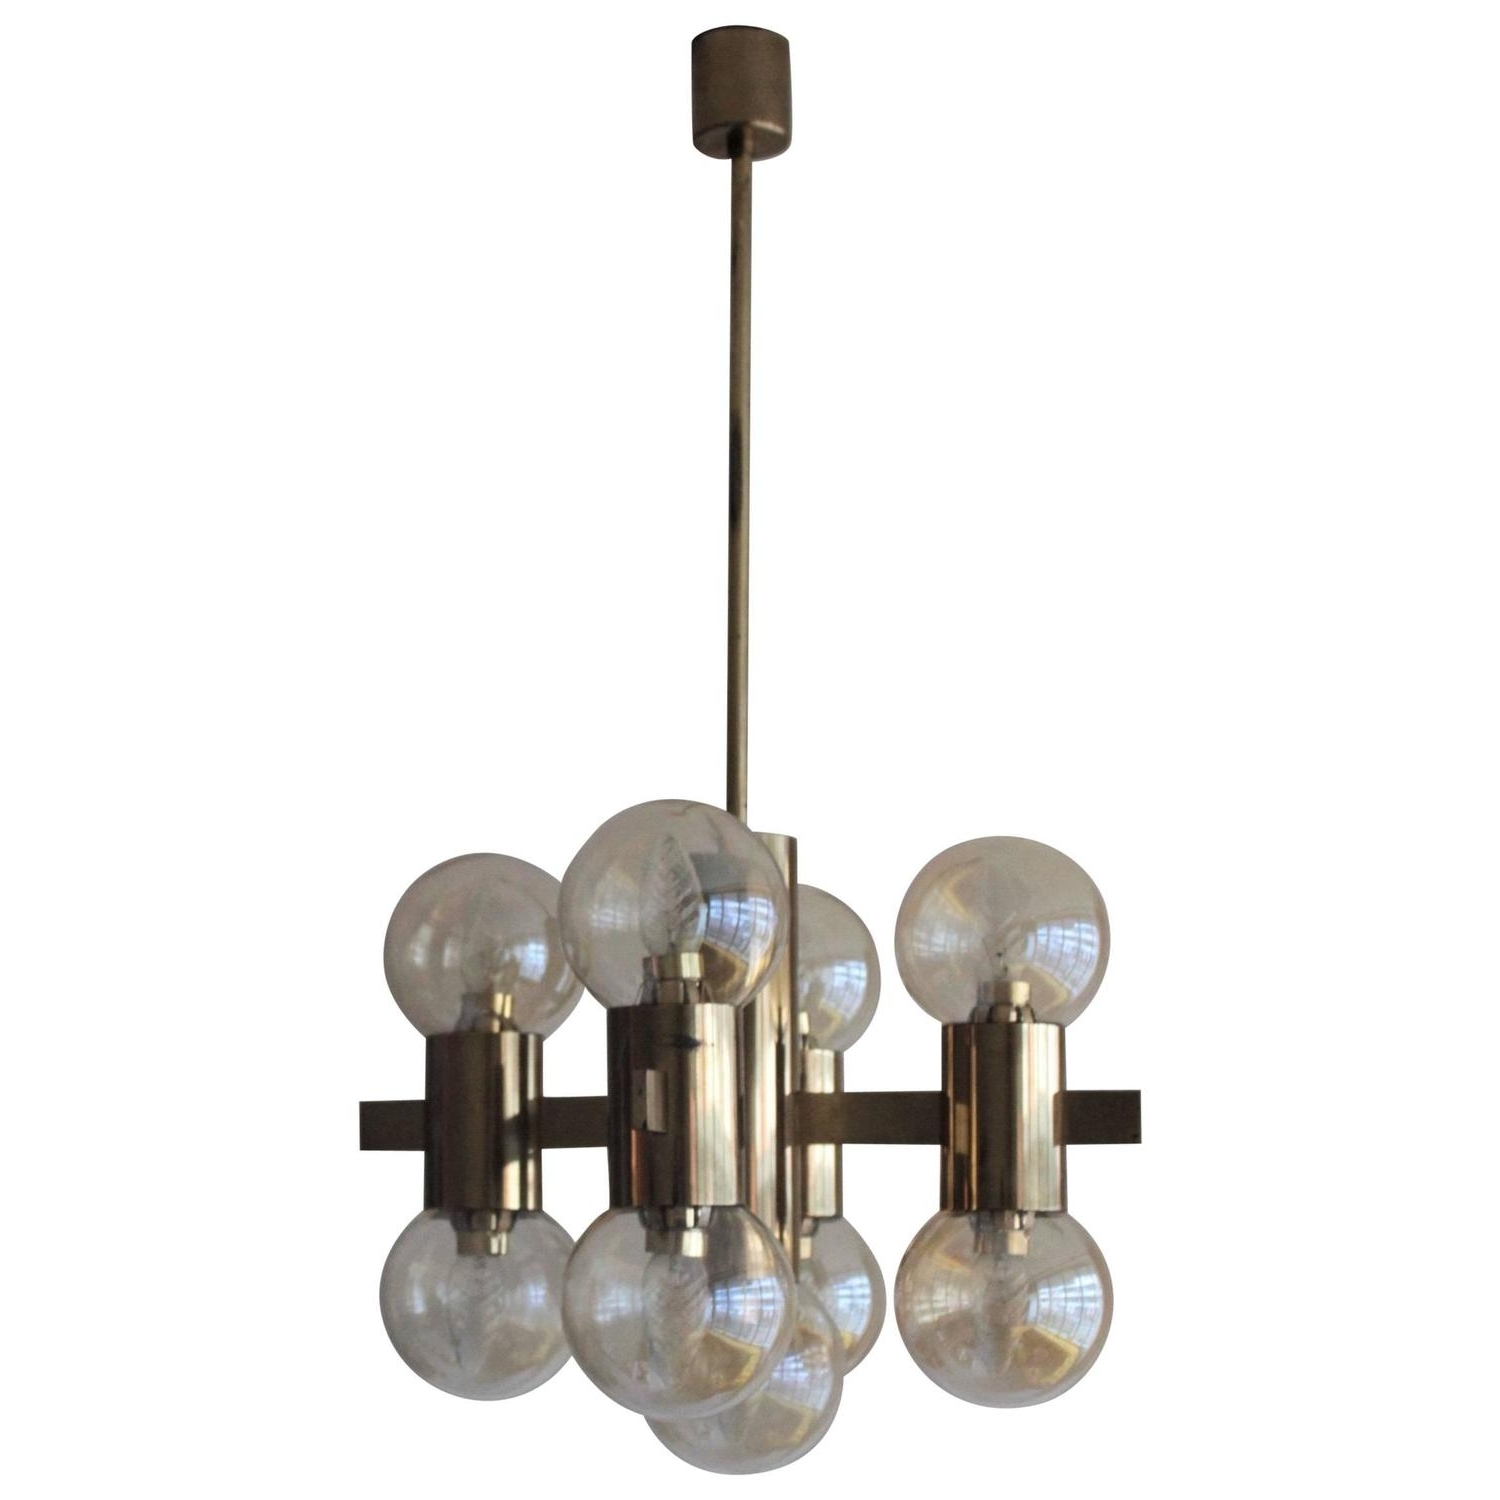 Italian Brass Smoked Glass Chandelier, 1970S For Sale At 1Stdibs Intended For Most Recently Released Smoked Glass Chandelier (Gallery 7 of 20)